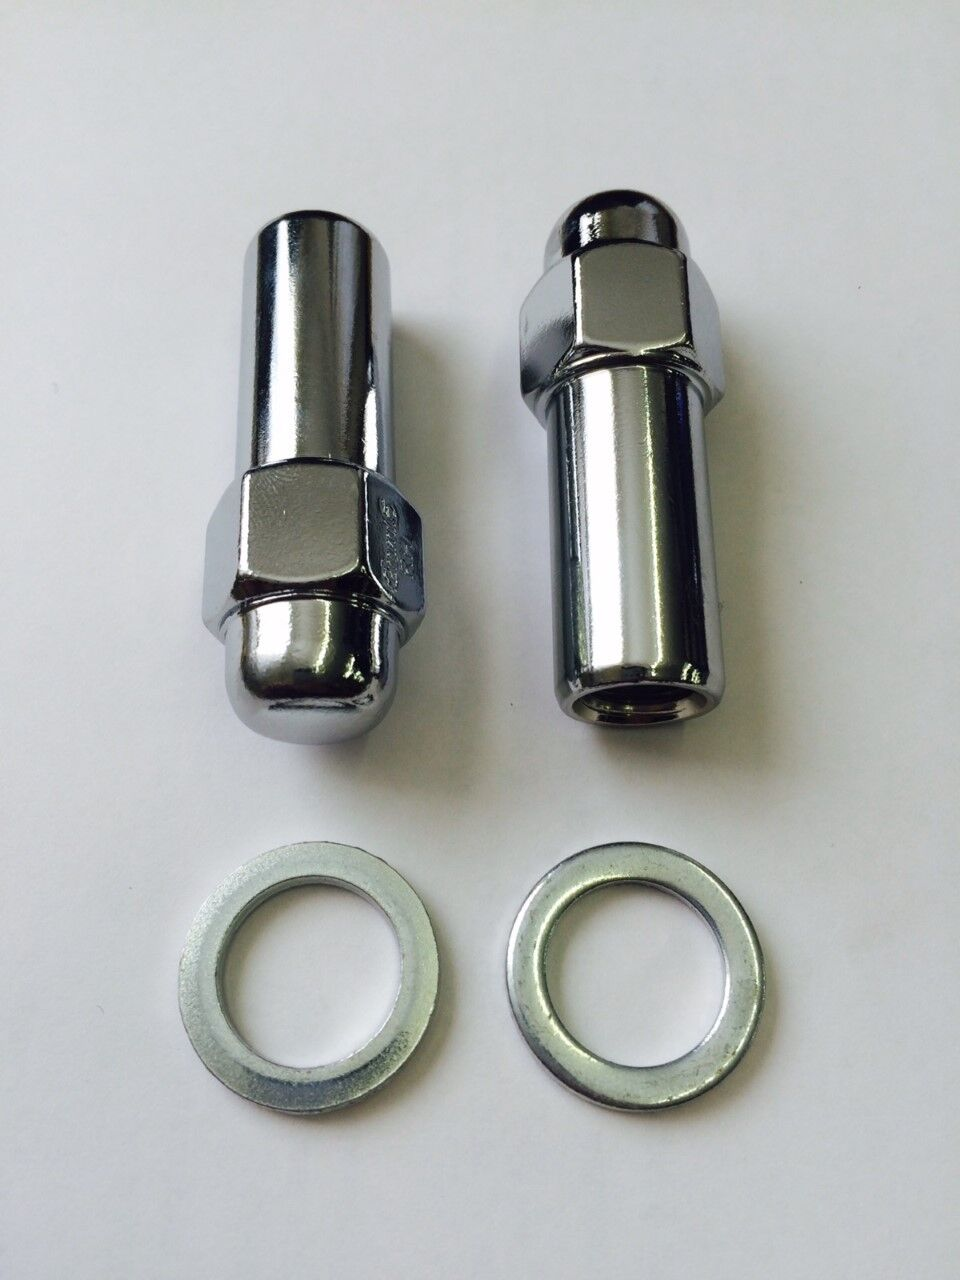 16x Mini Wheel Nuts 3//8 UNF Dome Type Aftermarket Or Steel Wheels Chrome Plated